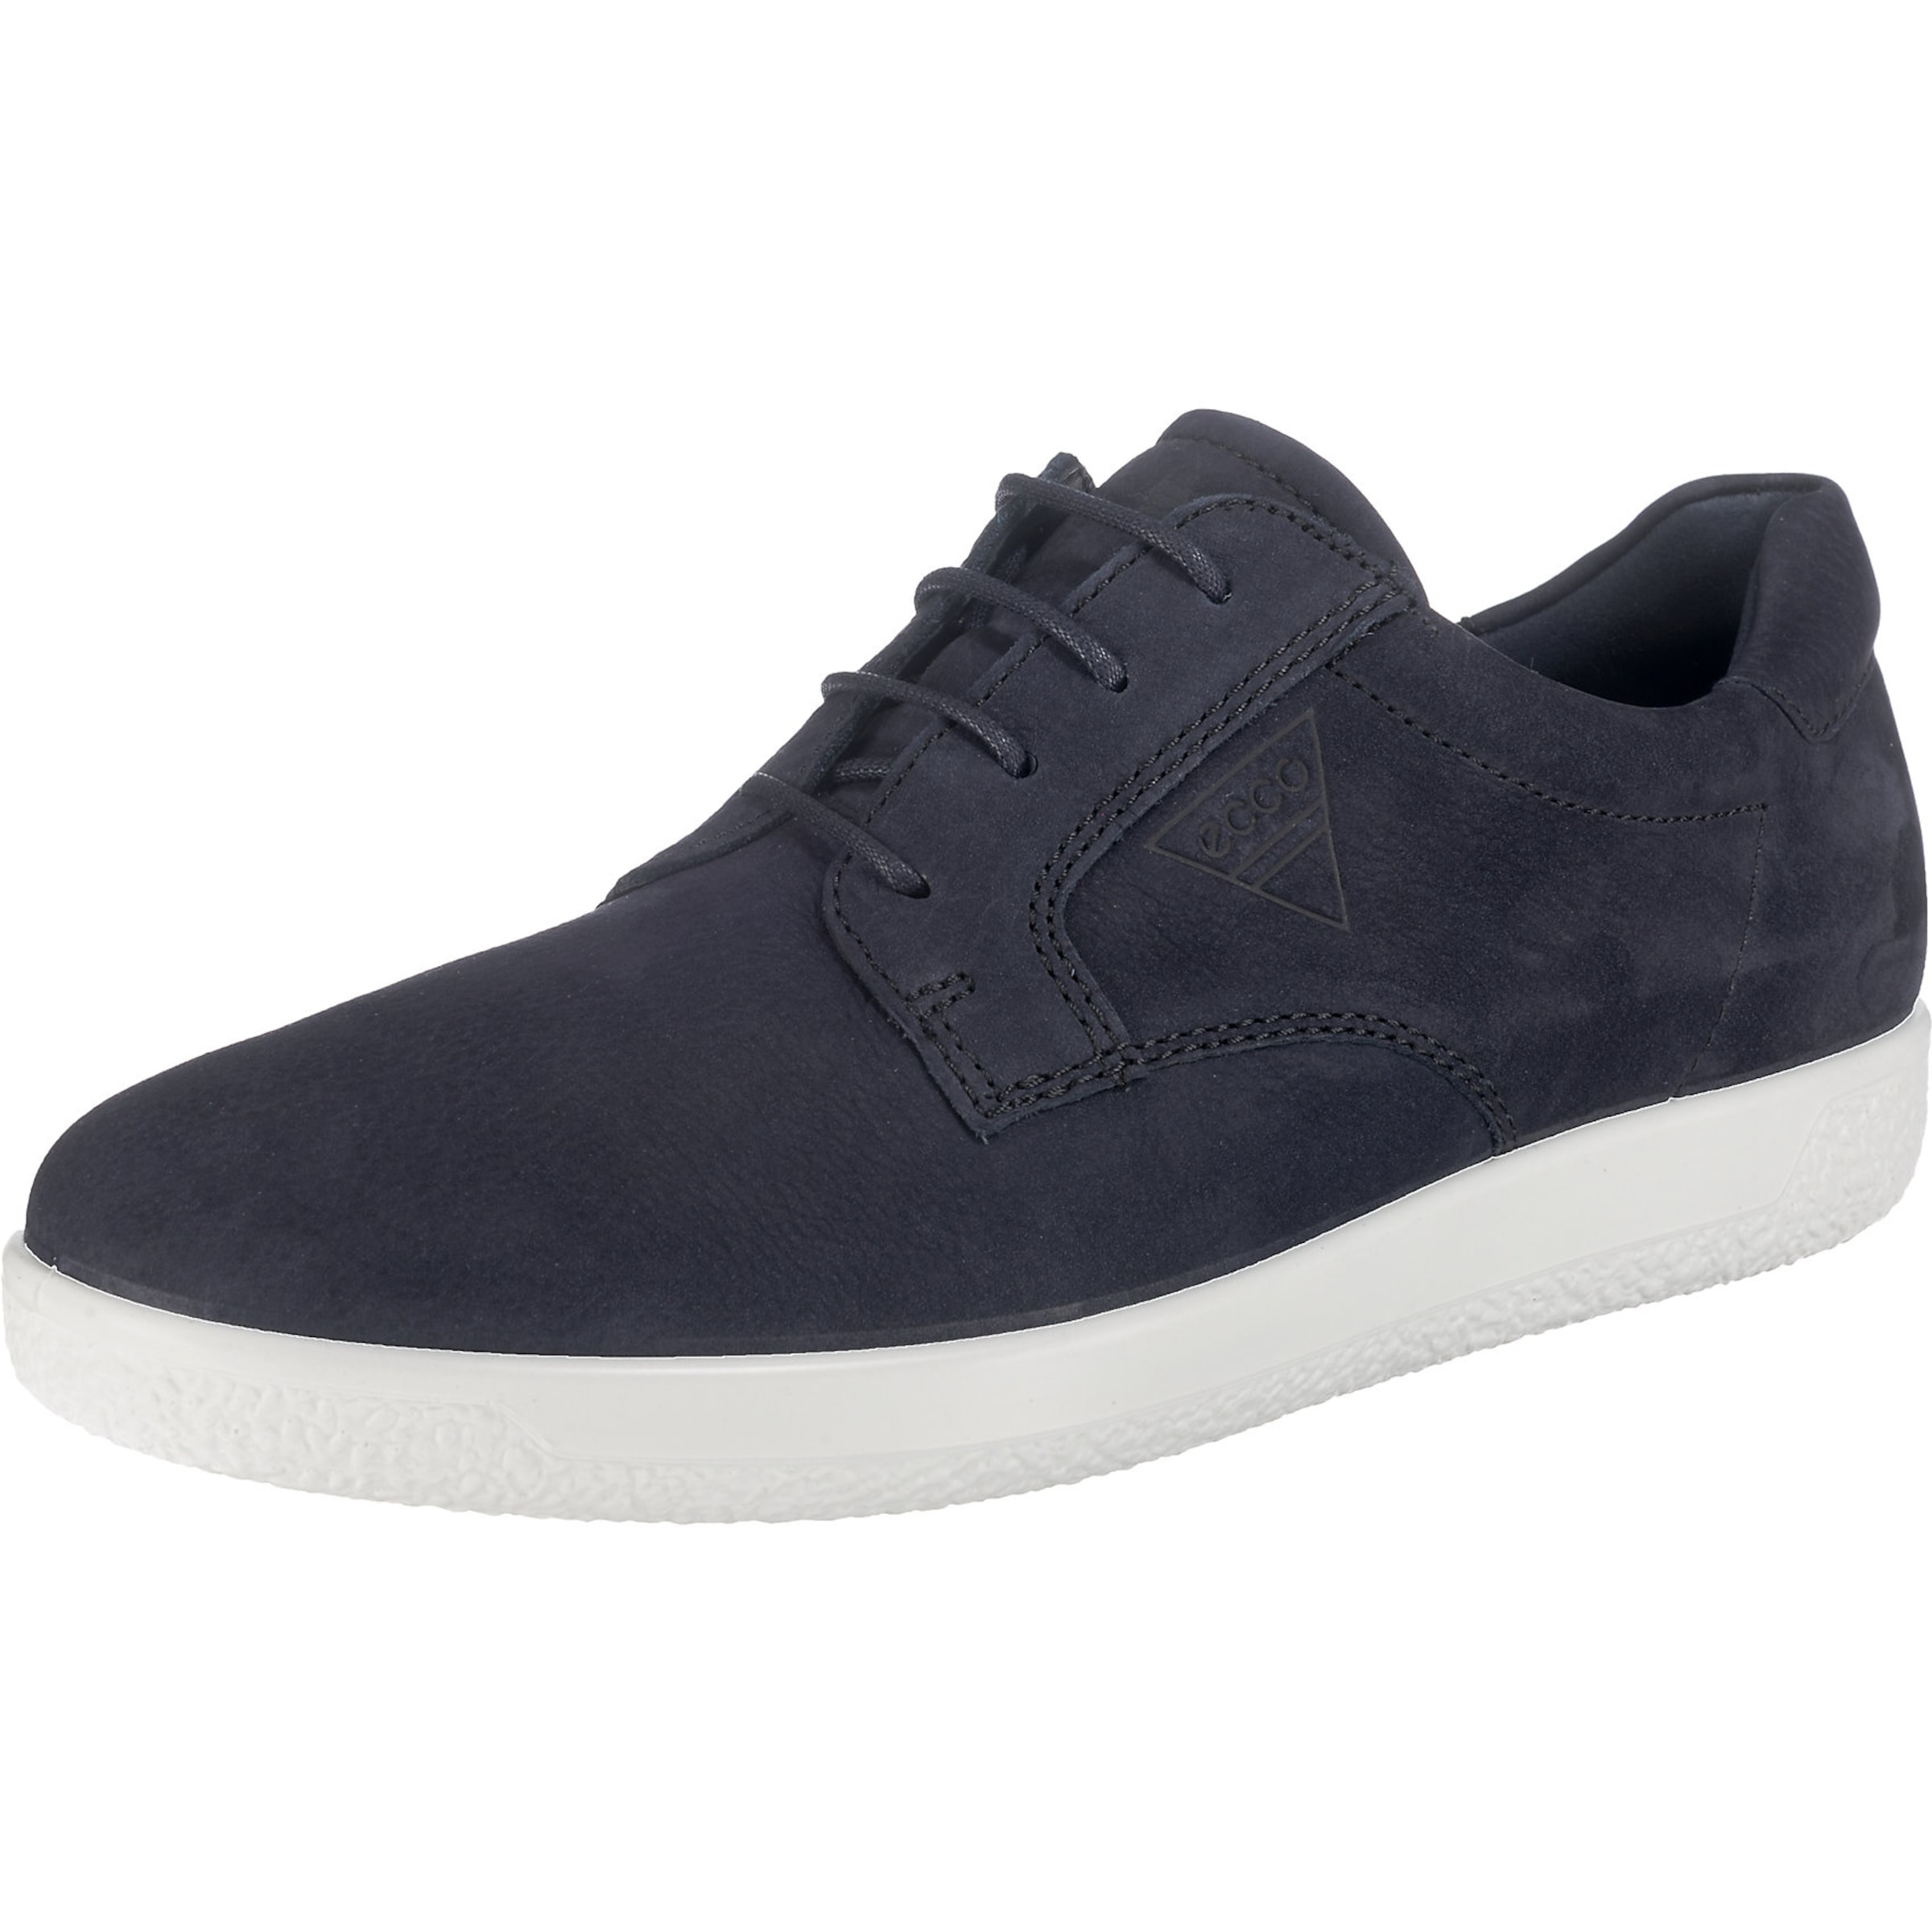 ECCO Sneakers Low Soft 1 Hohe Qualität